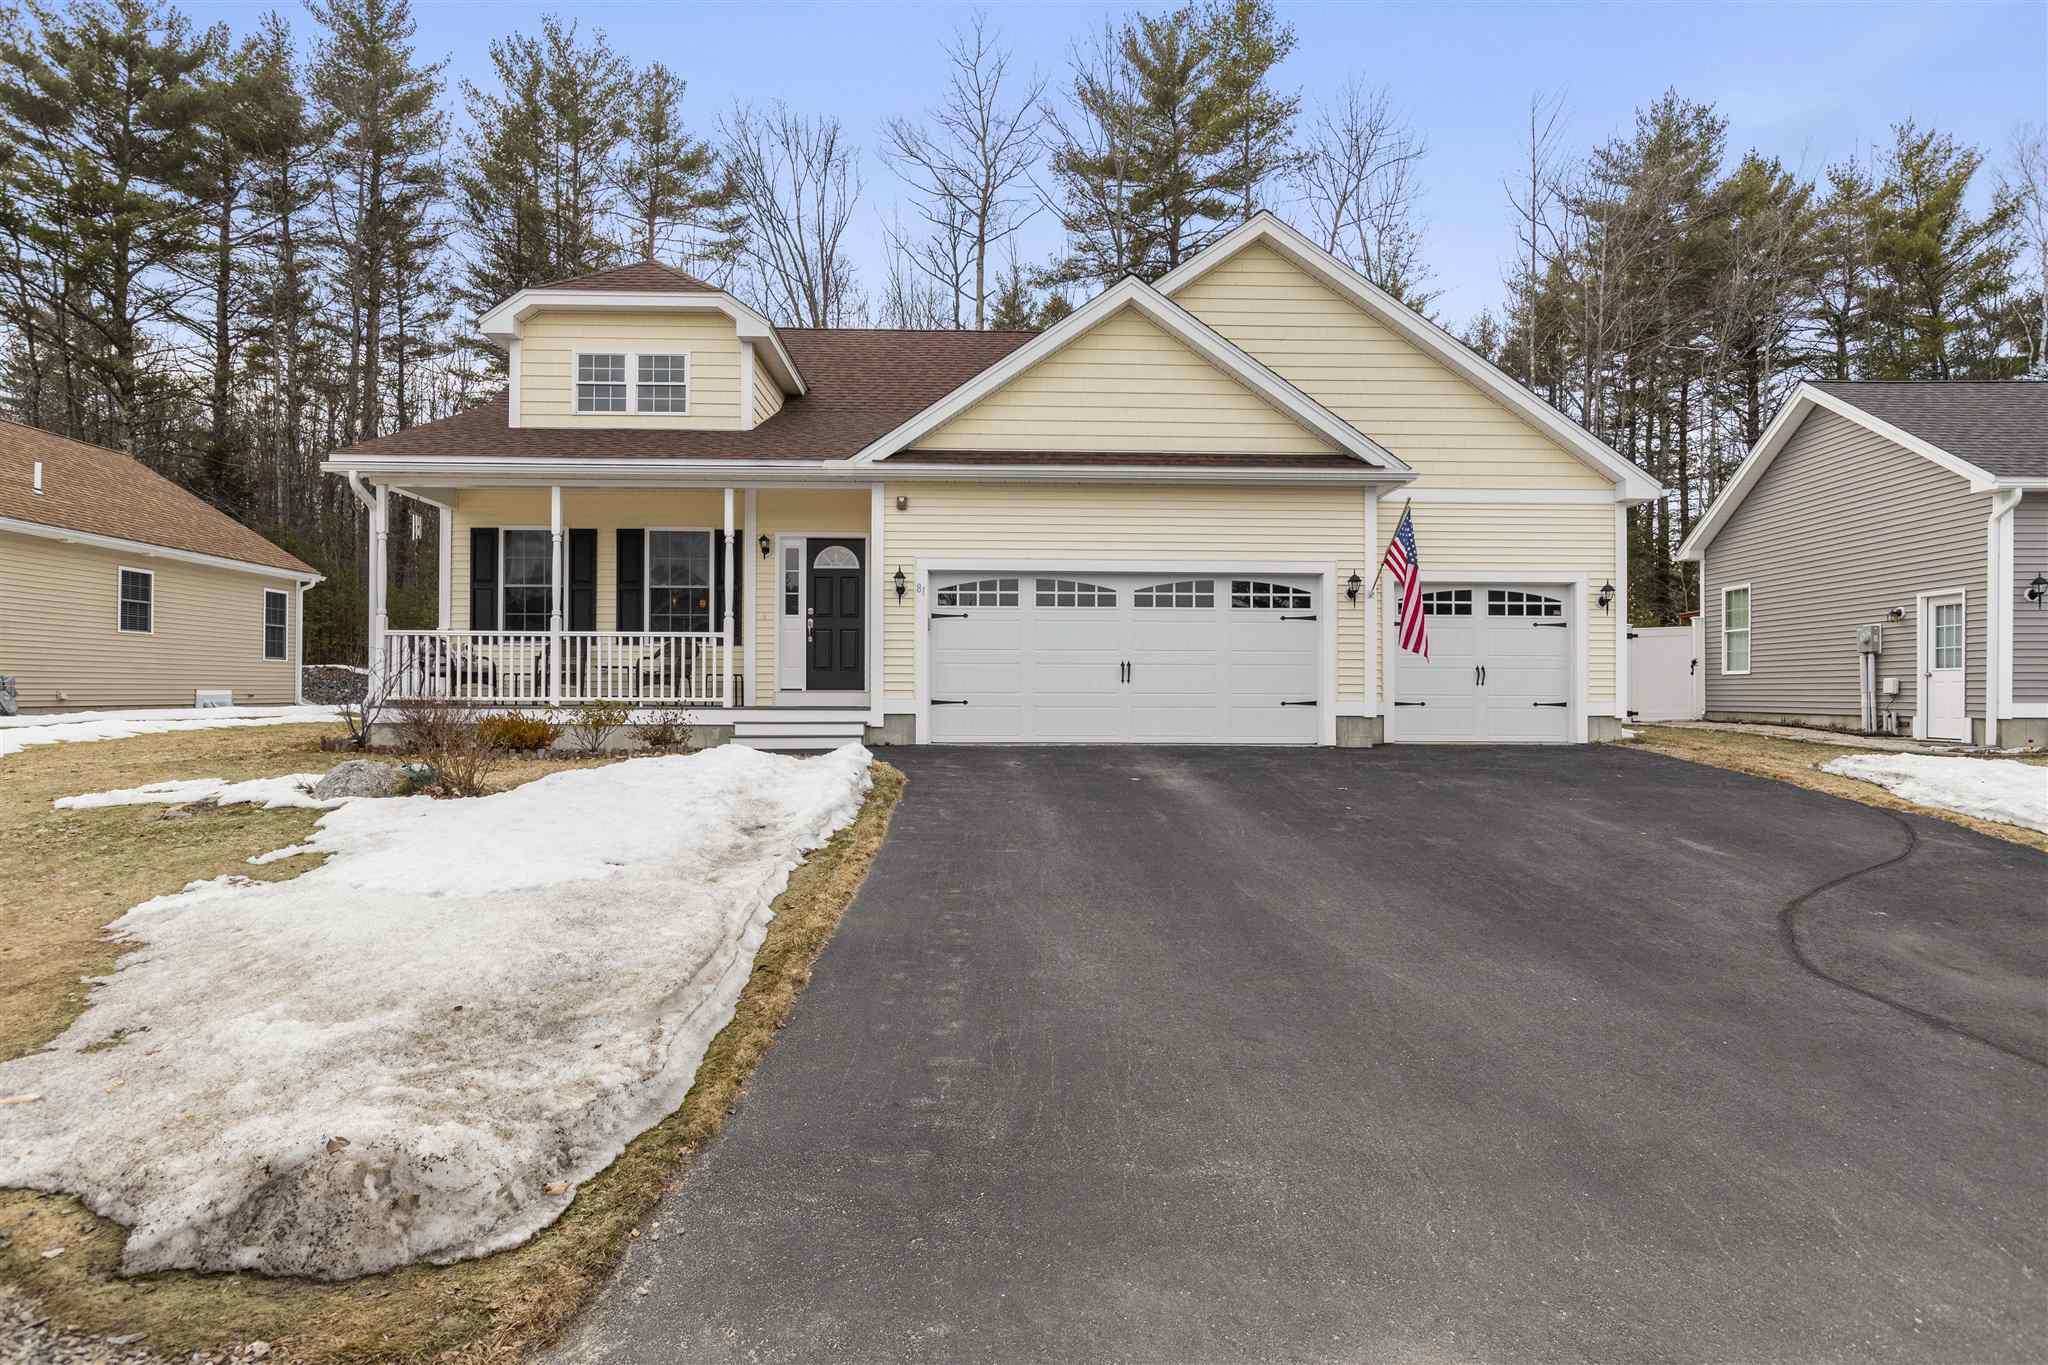 Photo of 81 Natures View Drive Laconia NH 03246